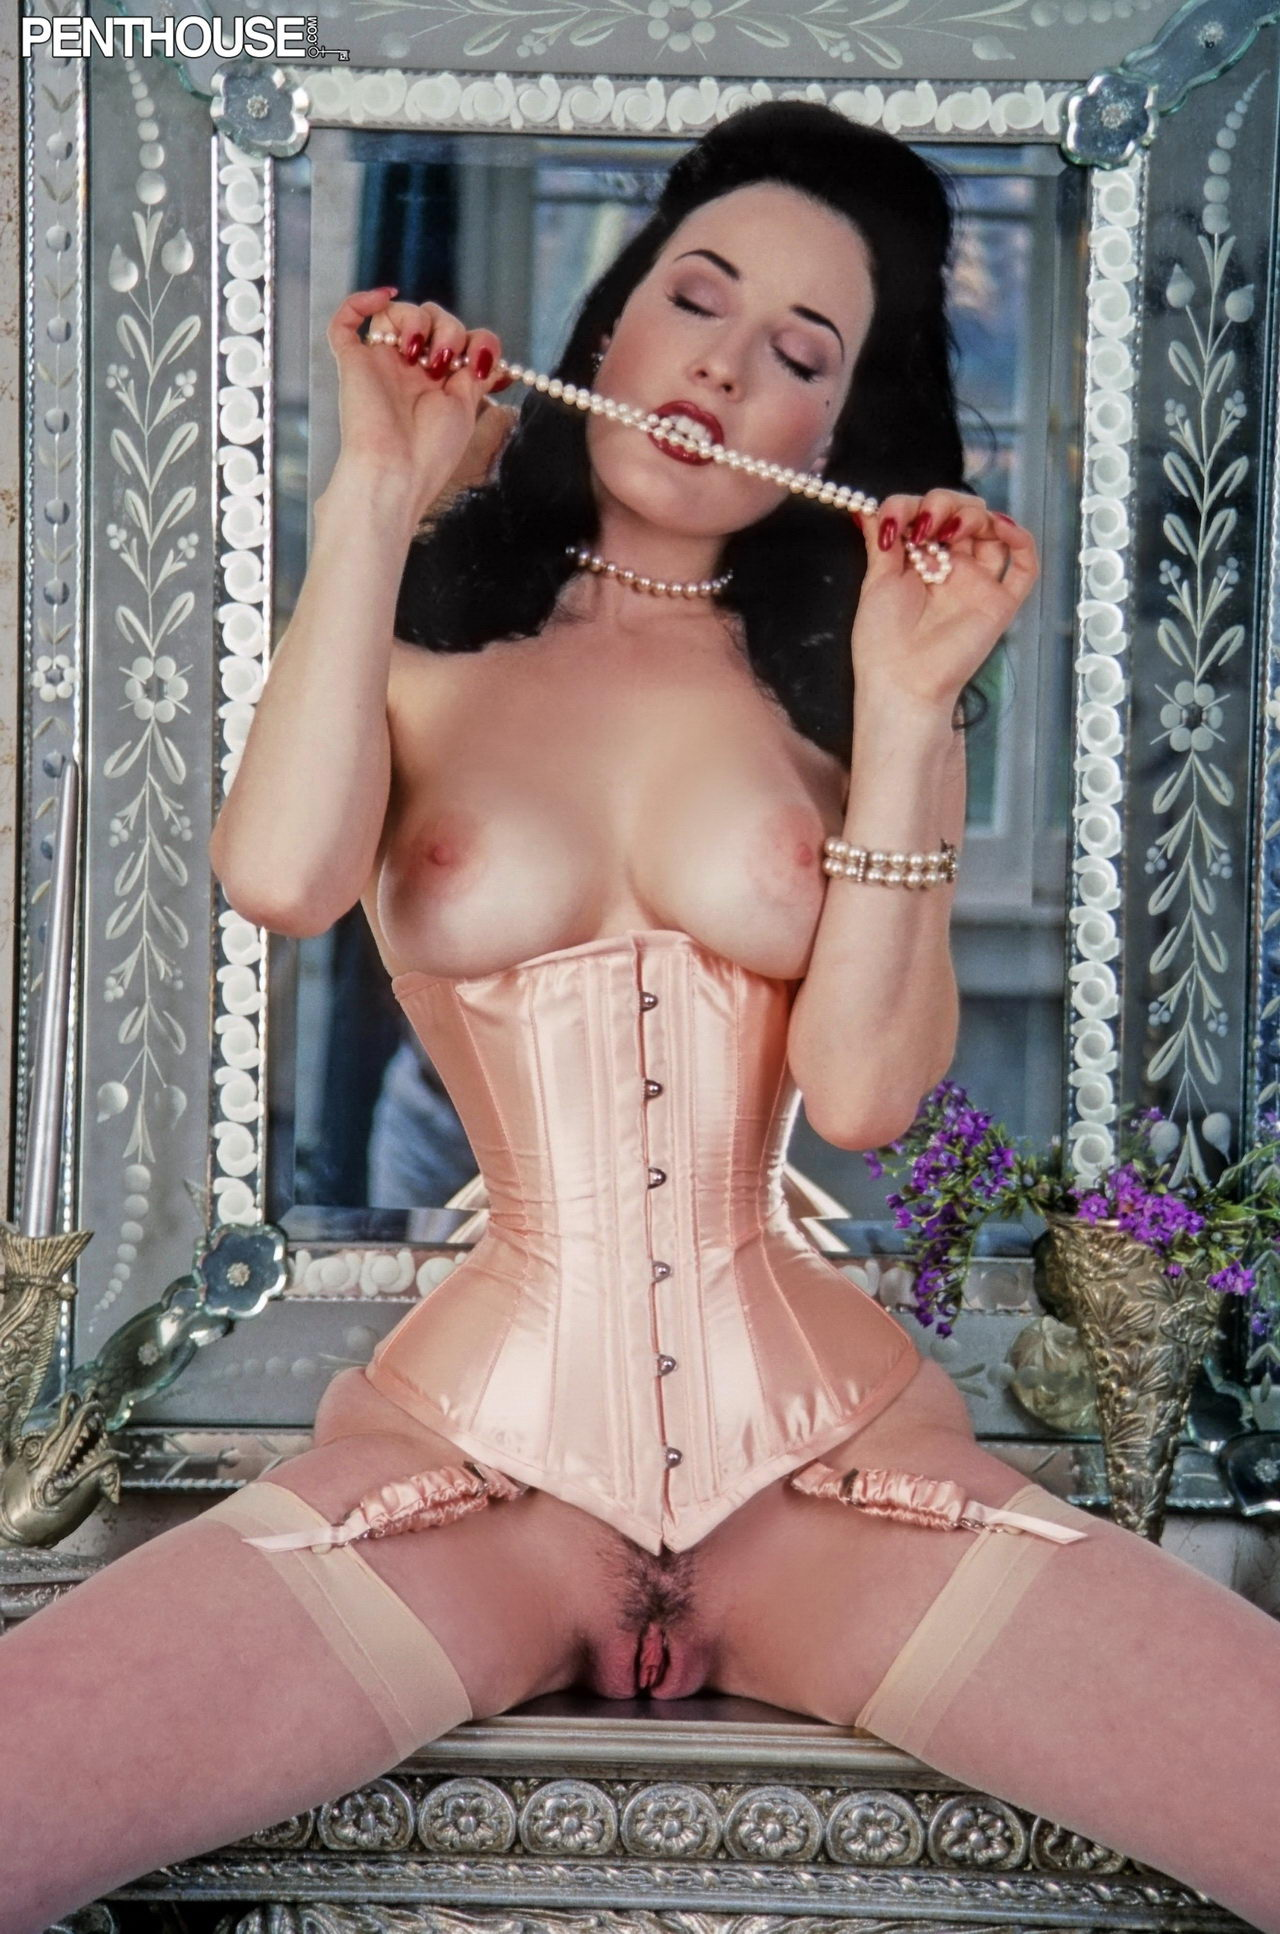 dita von tease sexy pictures authorize